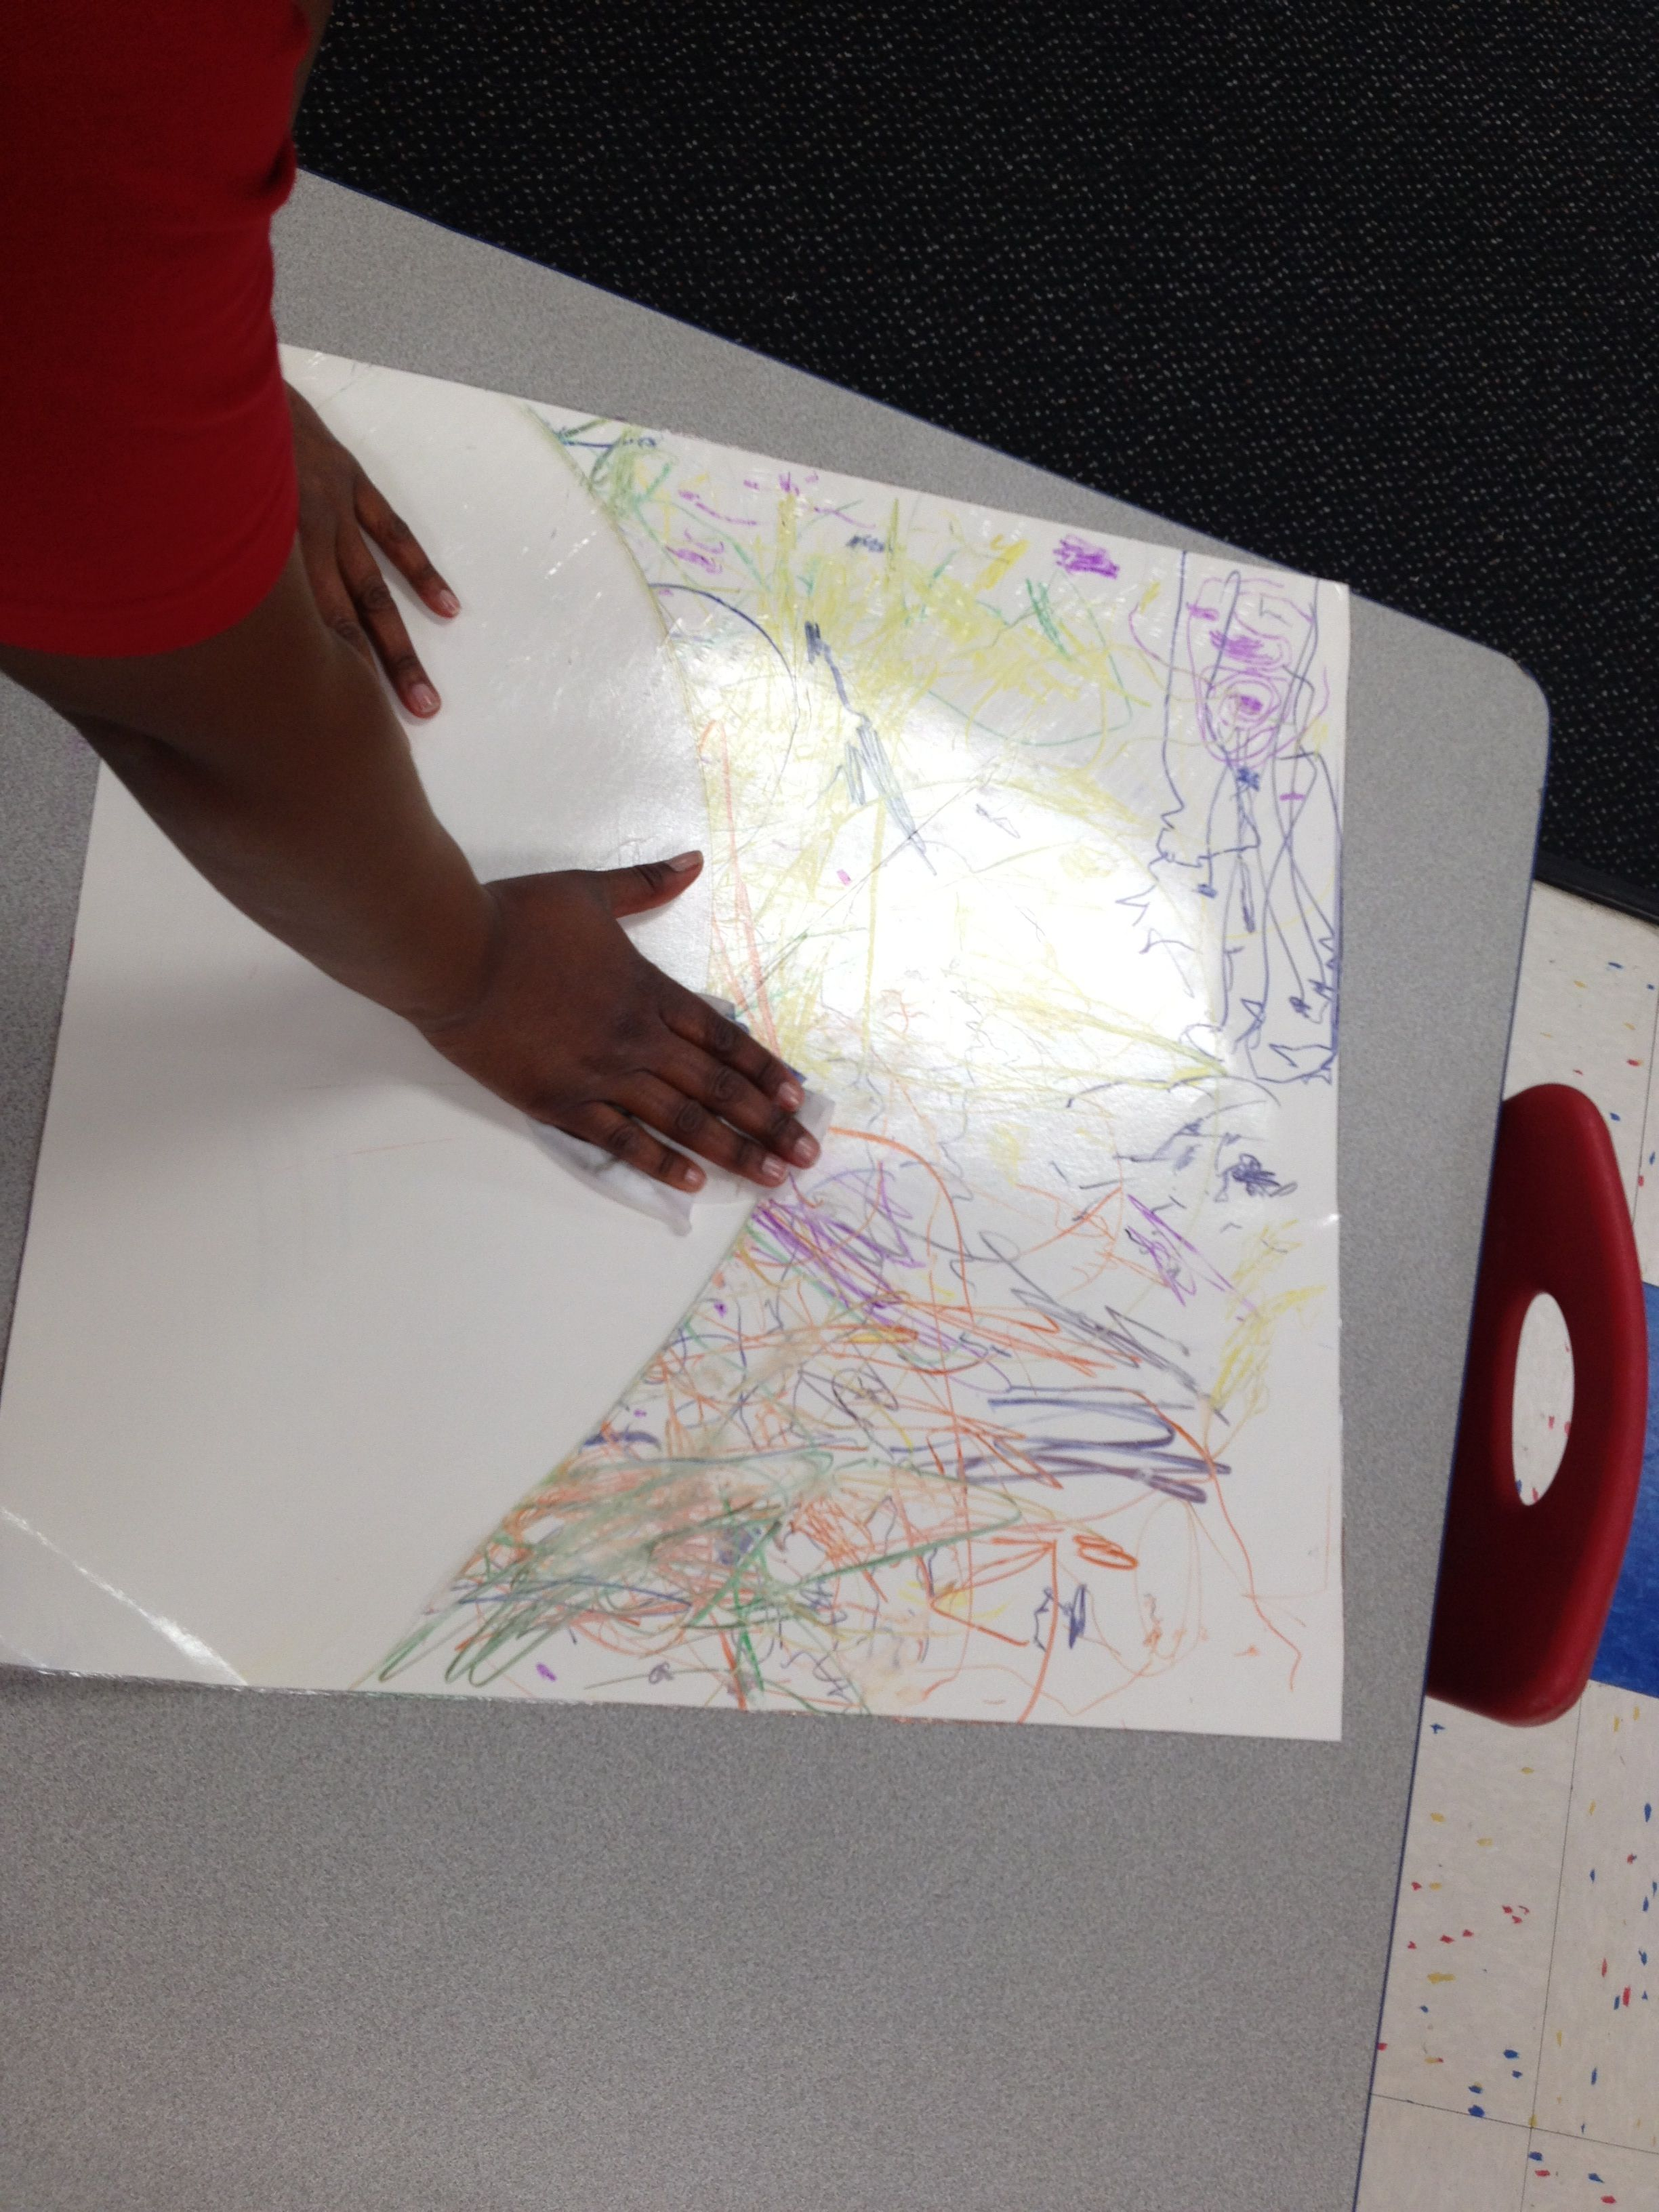 Make Your Own Dry Erase Boards Laminate Poster Board And It Can Be Used Over And Over Going Green In The Classroom School Fun